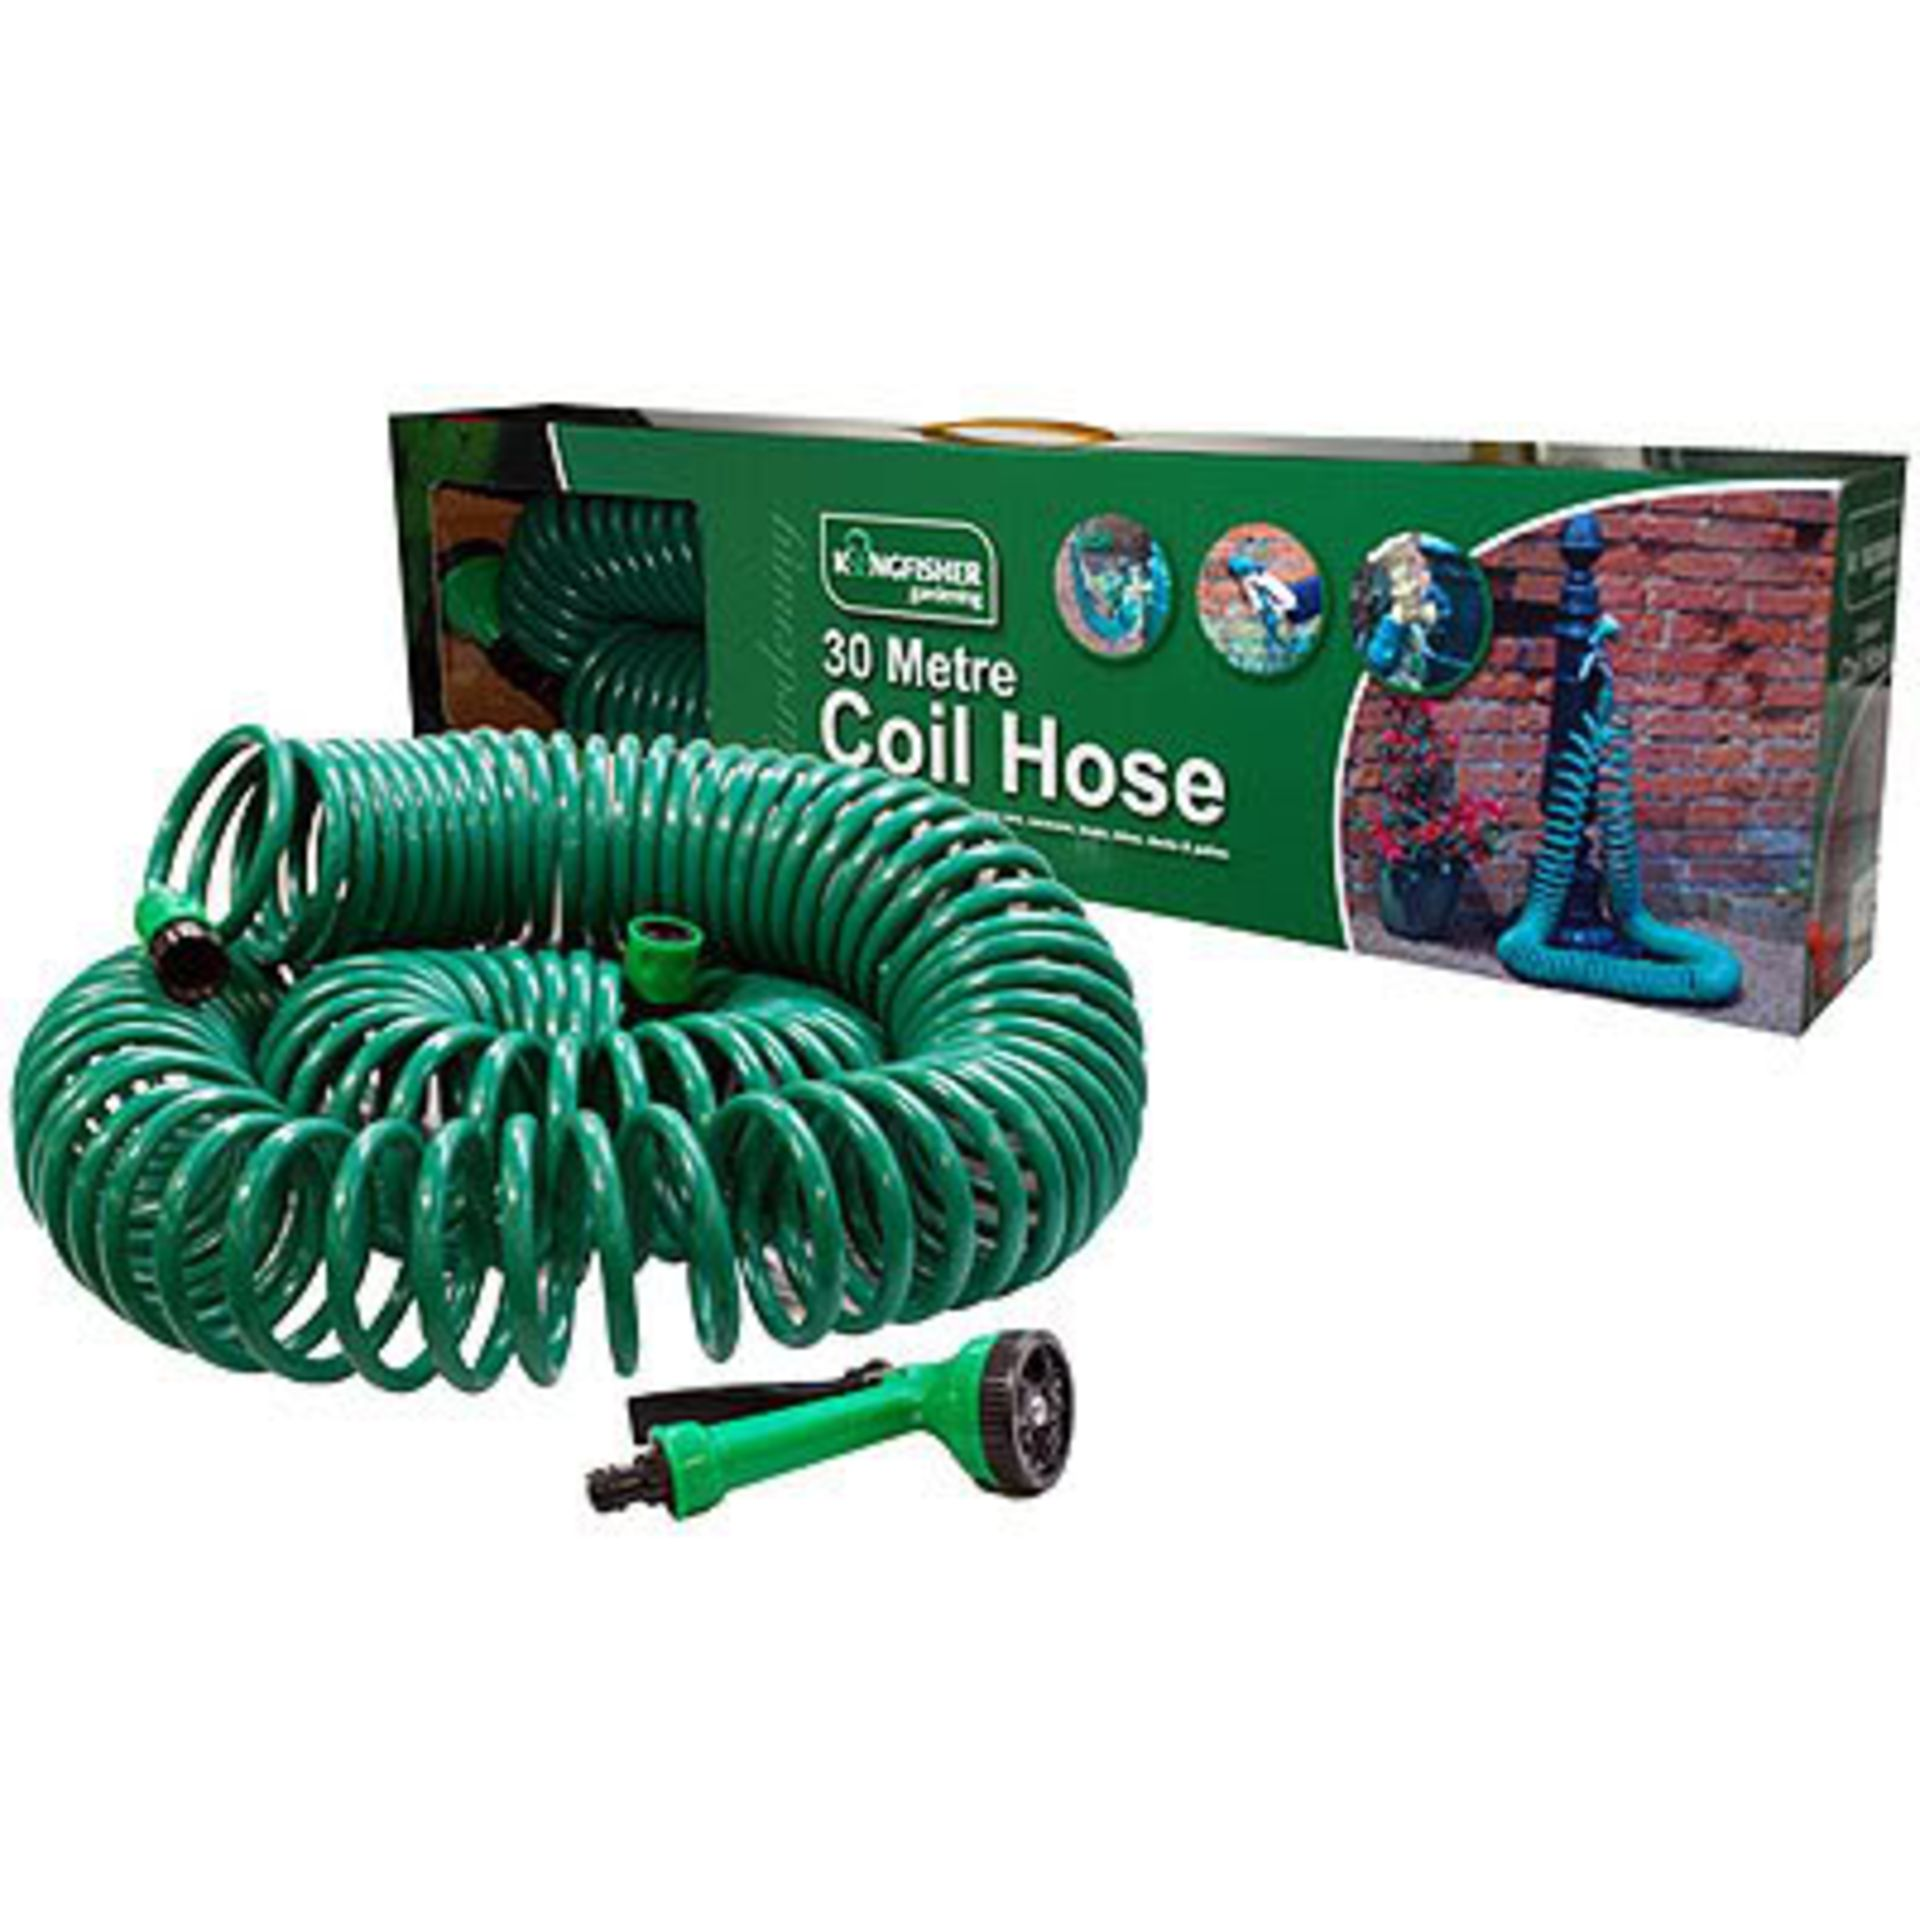 Lot 18046 - V Brand New 30 Metre Coil Hose With Nozzle And Tap Connectors Etc